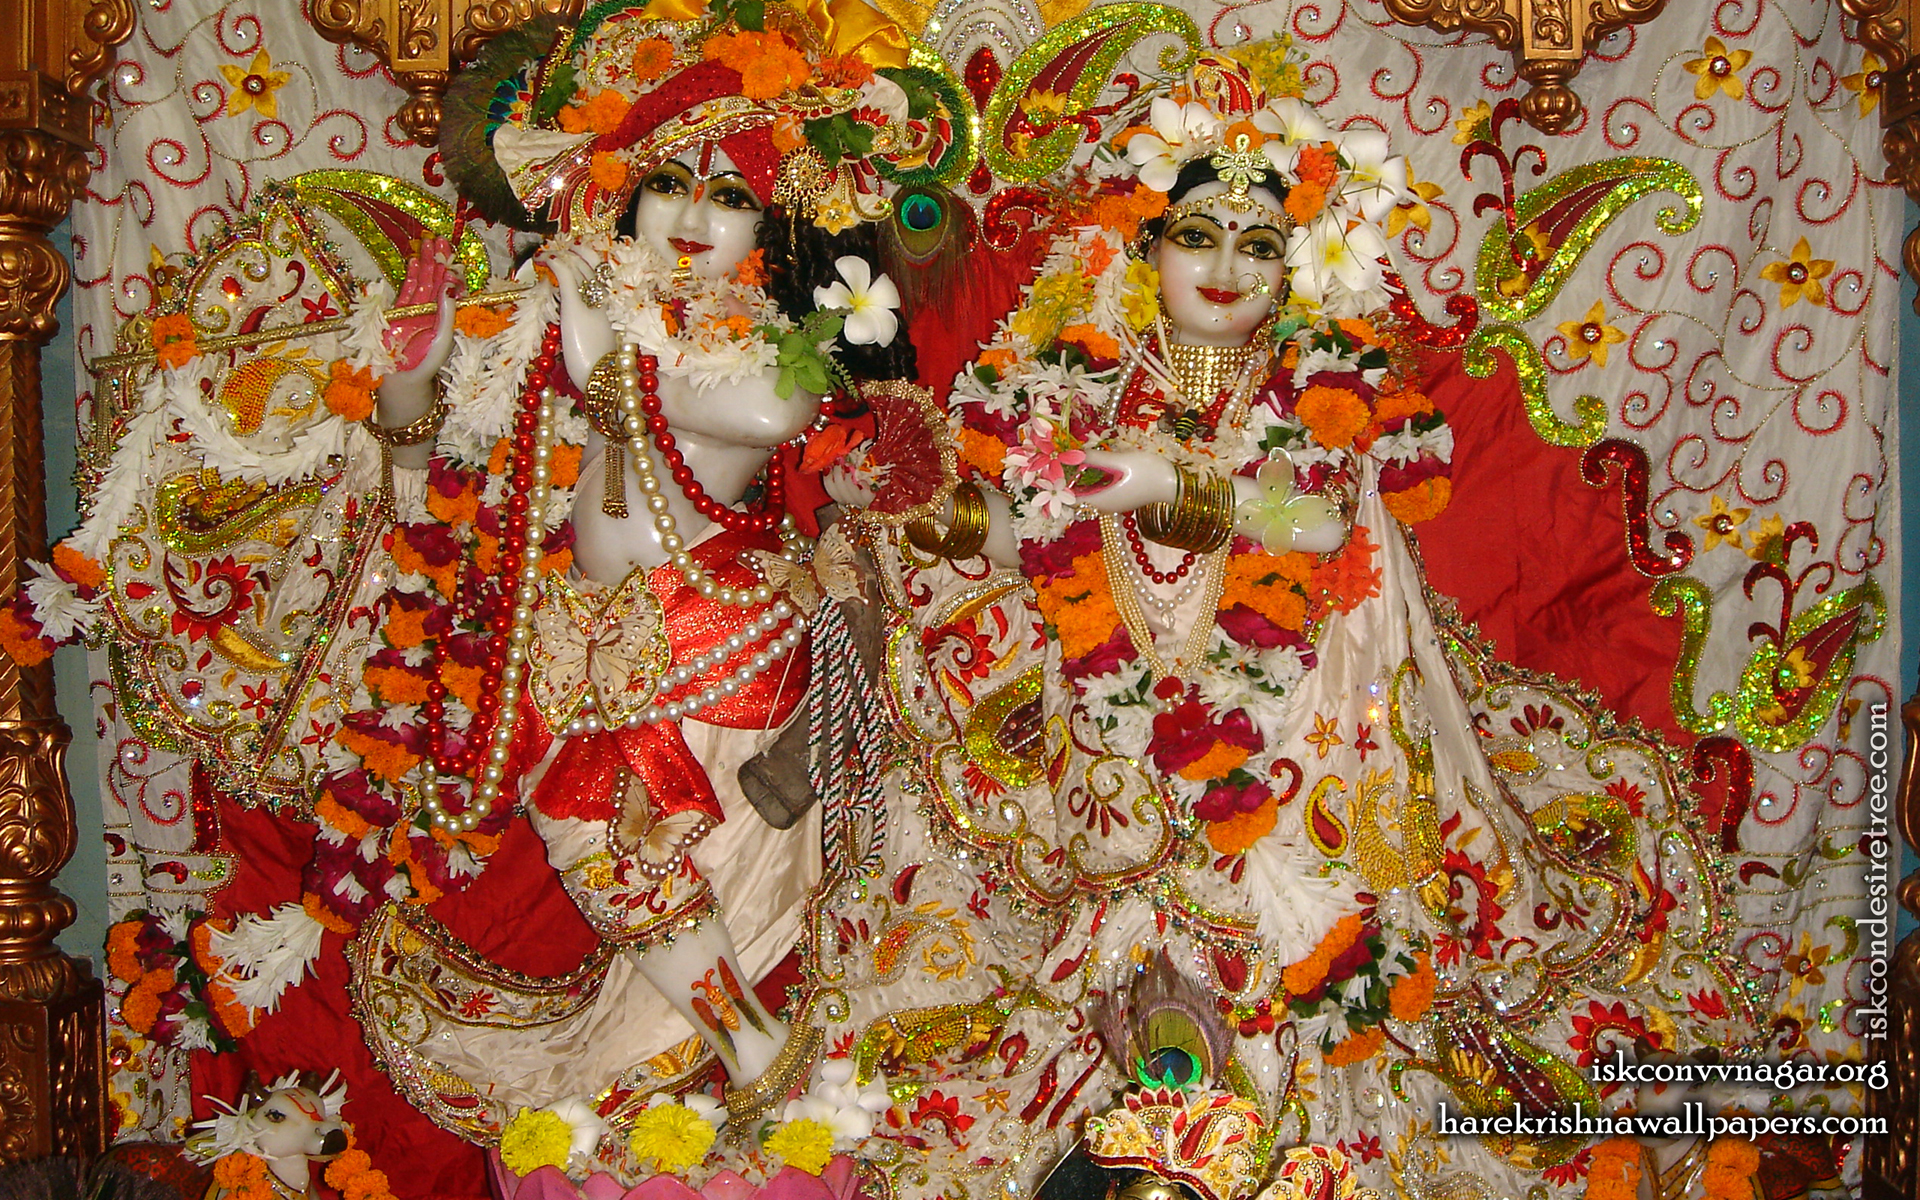 Sri Sri Radha Giridhari Wallpaper (025) Size 1920x1200 Download